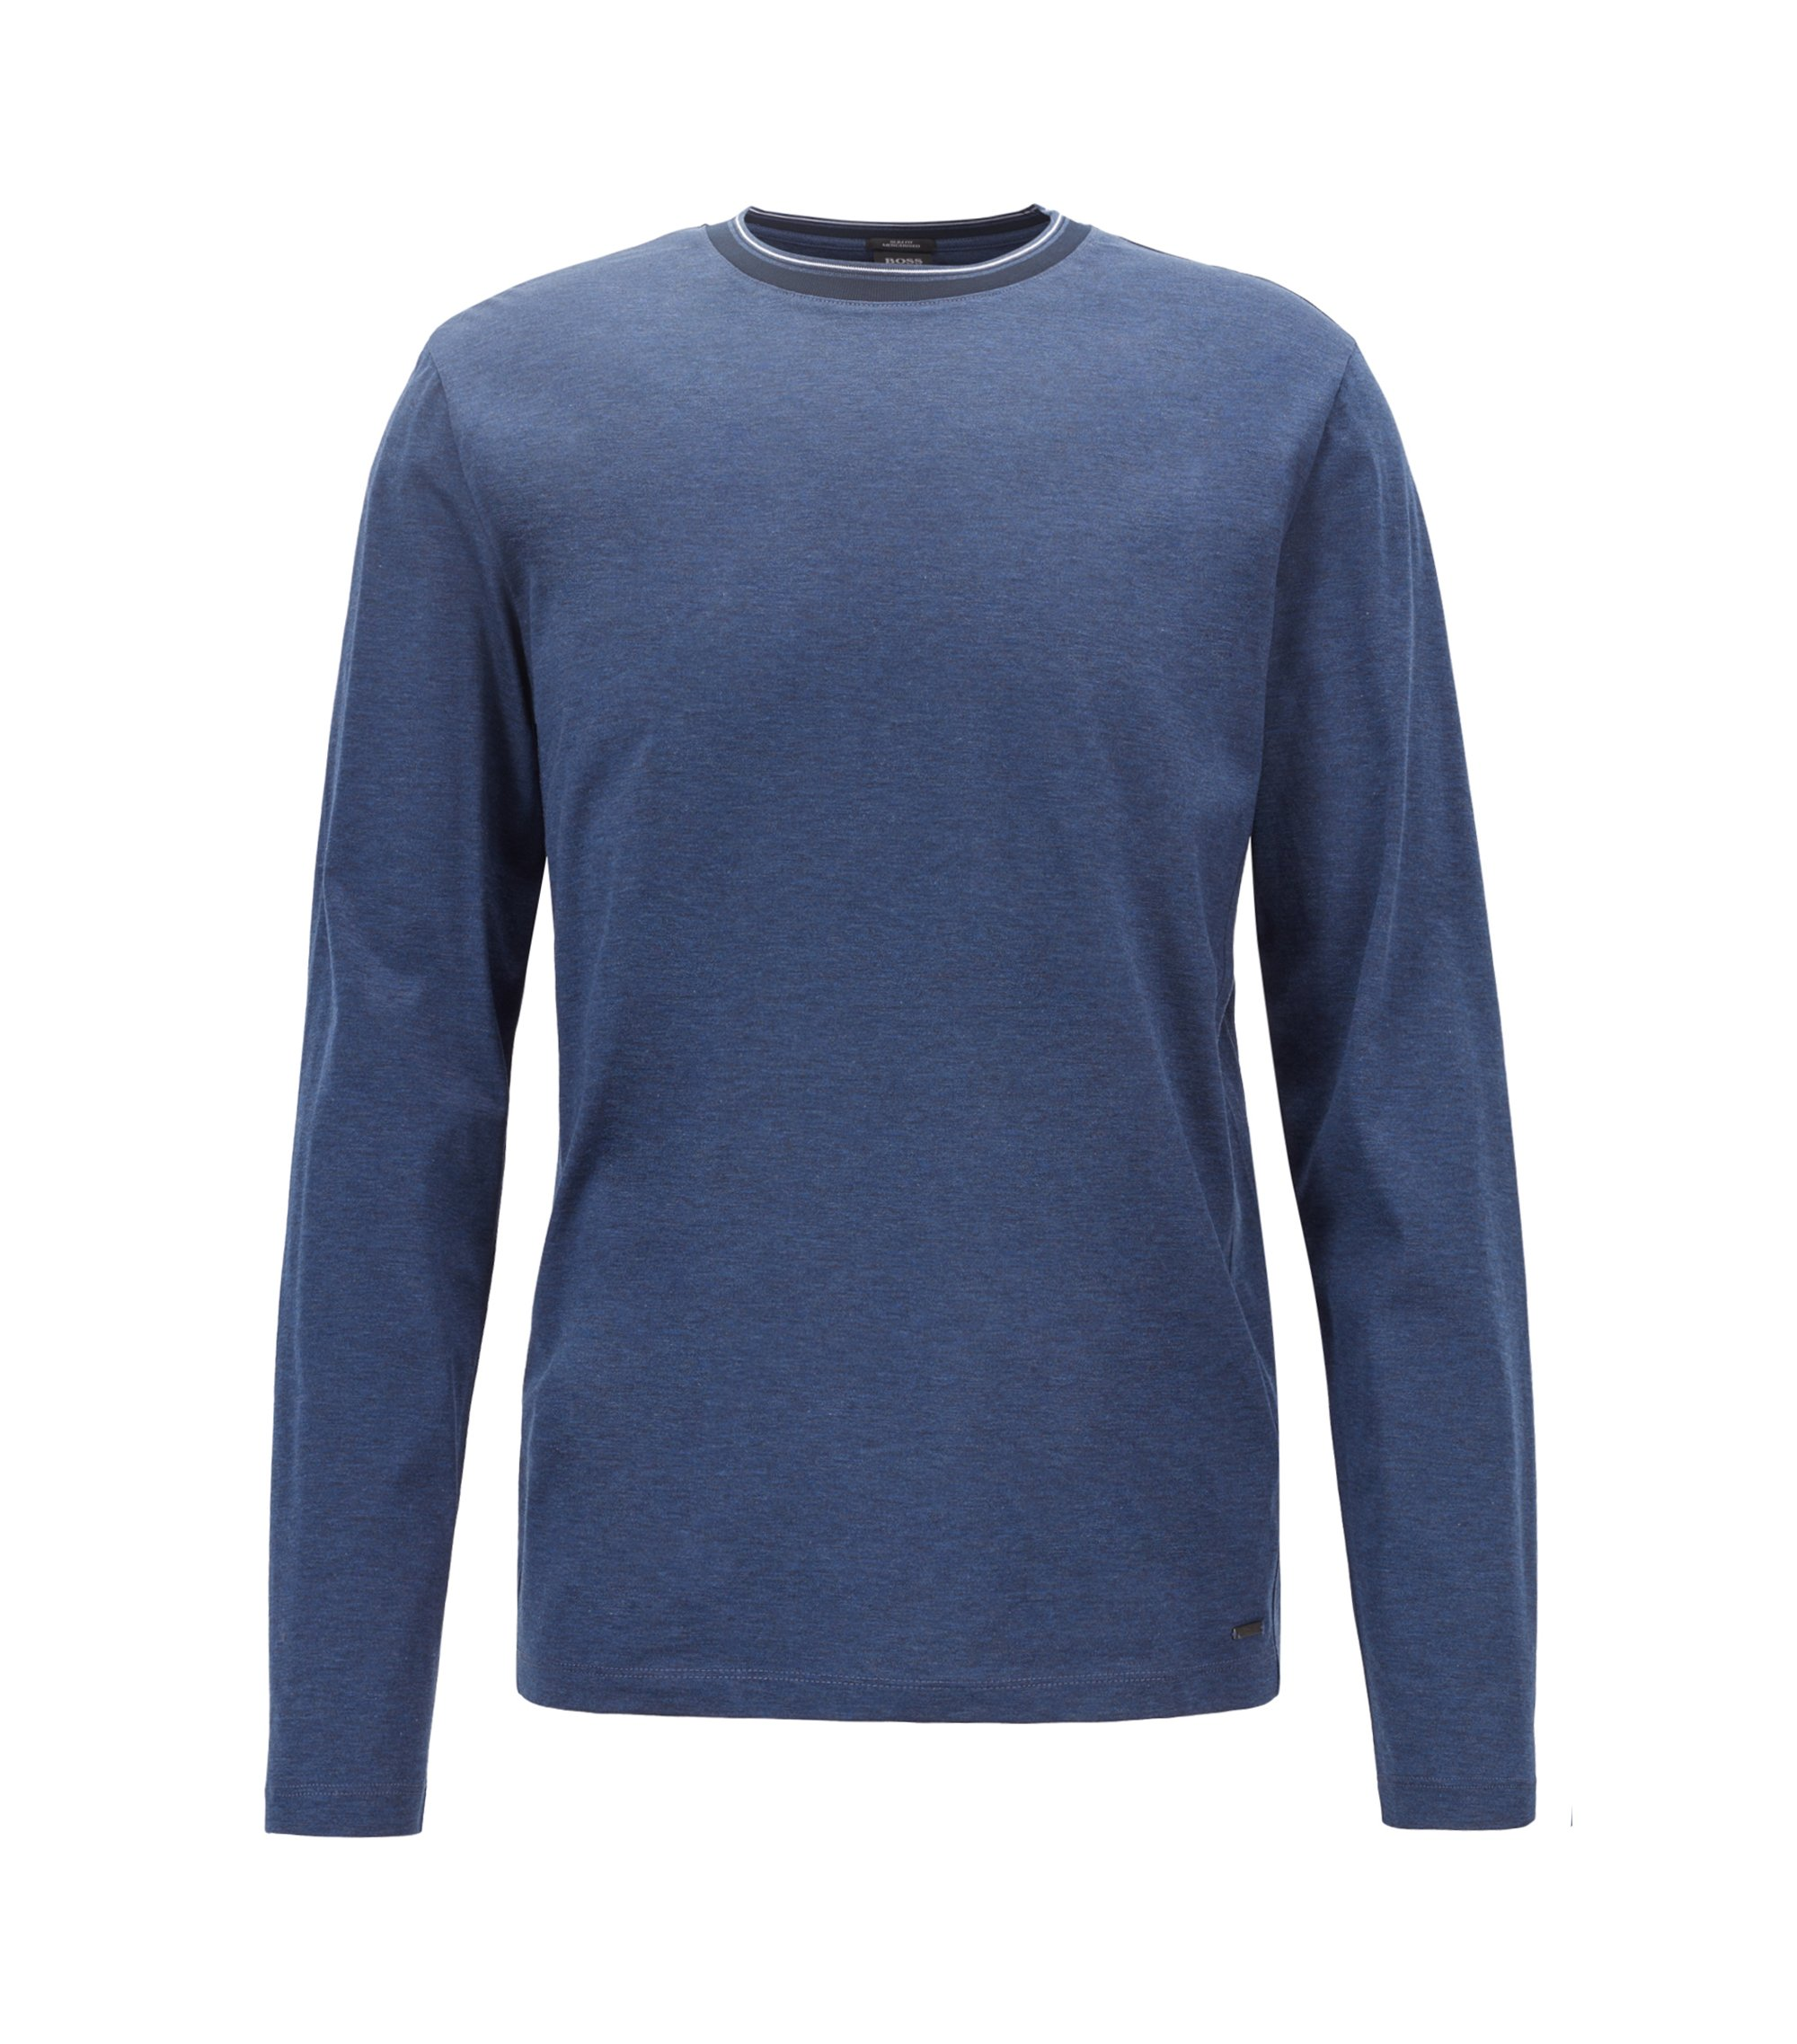 Long-sleeved T-shirt in mercerized cotton with striped neckline, Open Blue